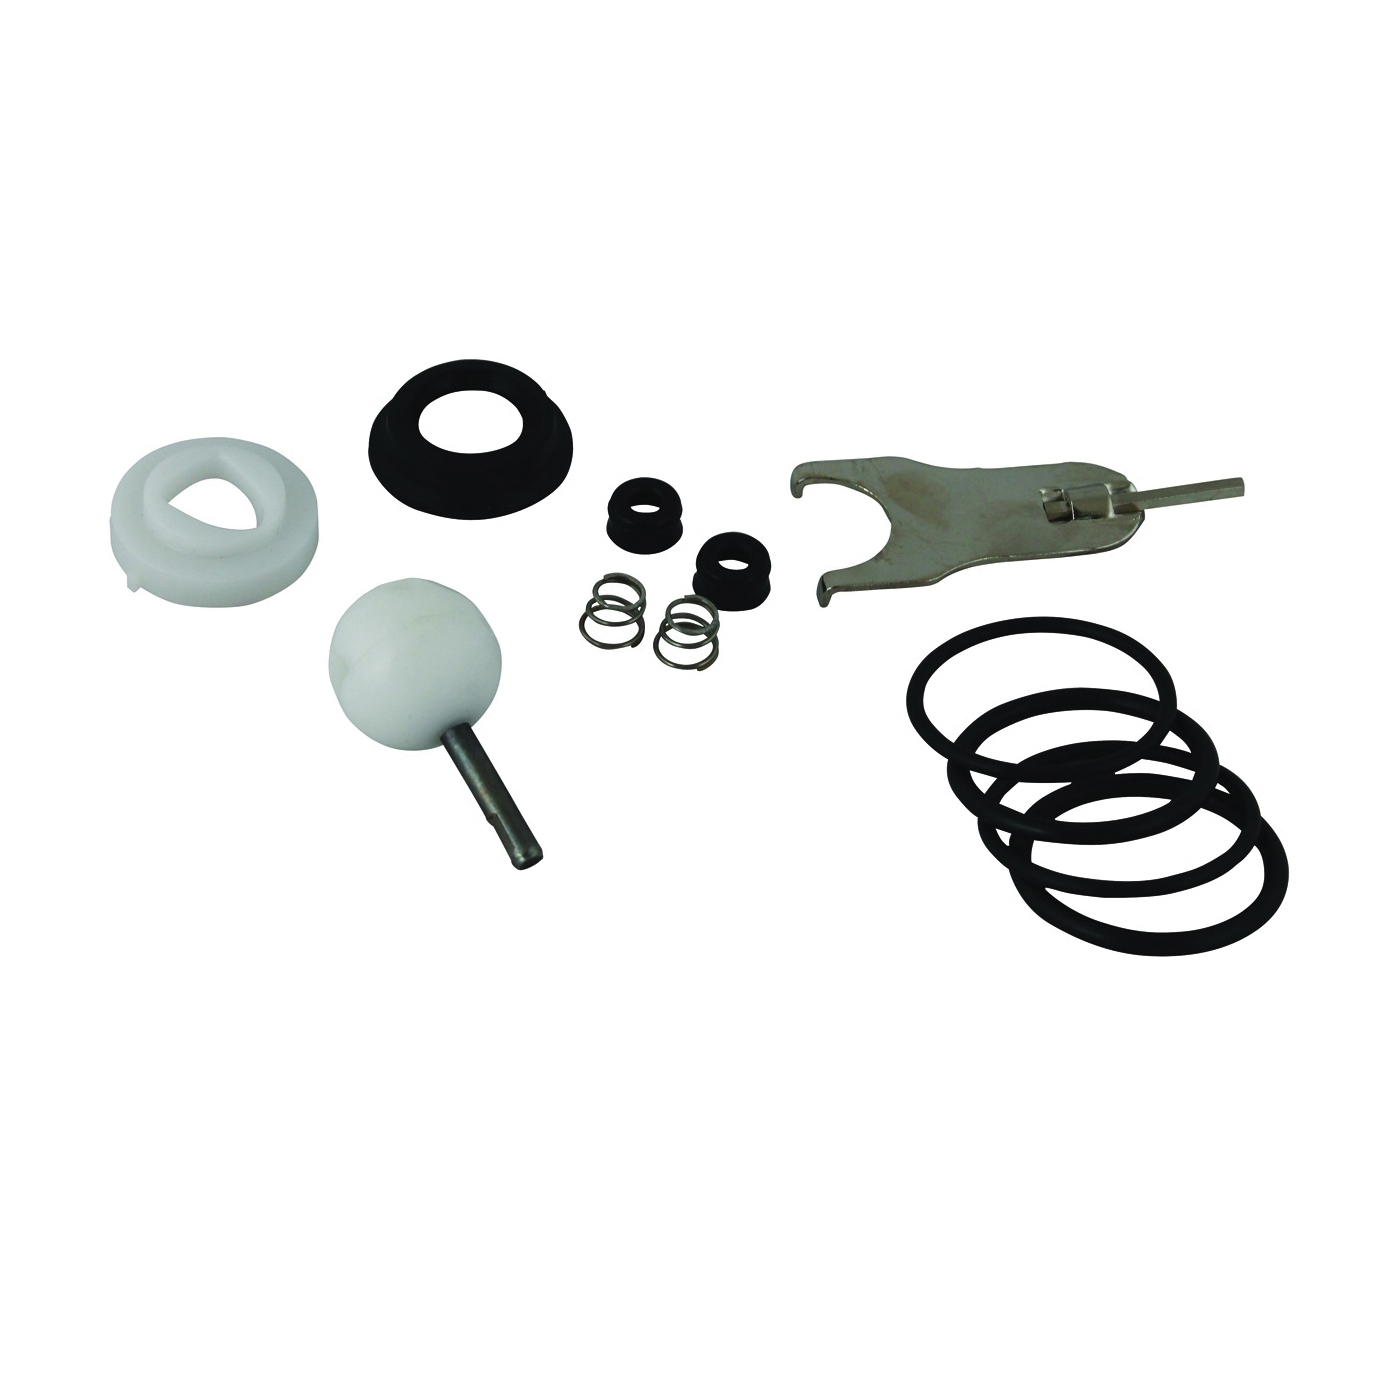 Picture of Plumb Pak PP808-67 Faucet Repair Kit, For: Delta Single-Lever Style Faucets